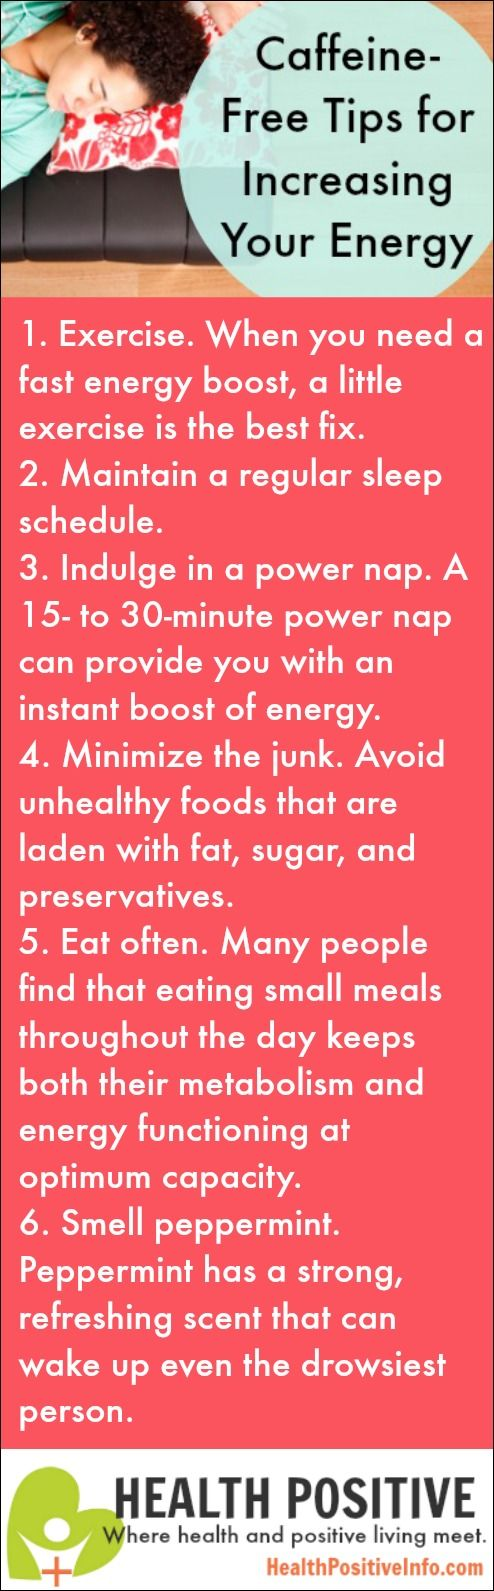 Caffeine-Free Tips  http://healthpositiveinfo.com/caffeine-free-tips-for-increasing-your-energy.html